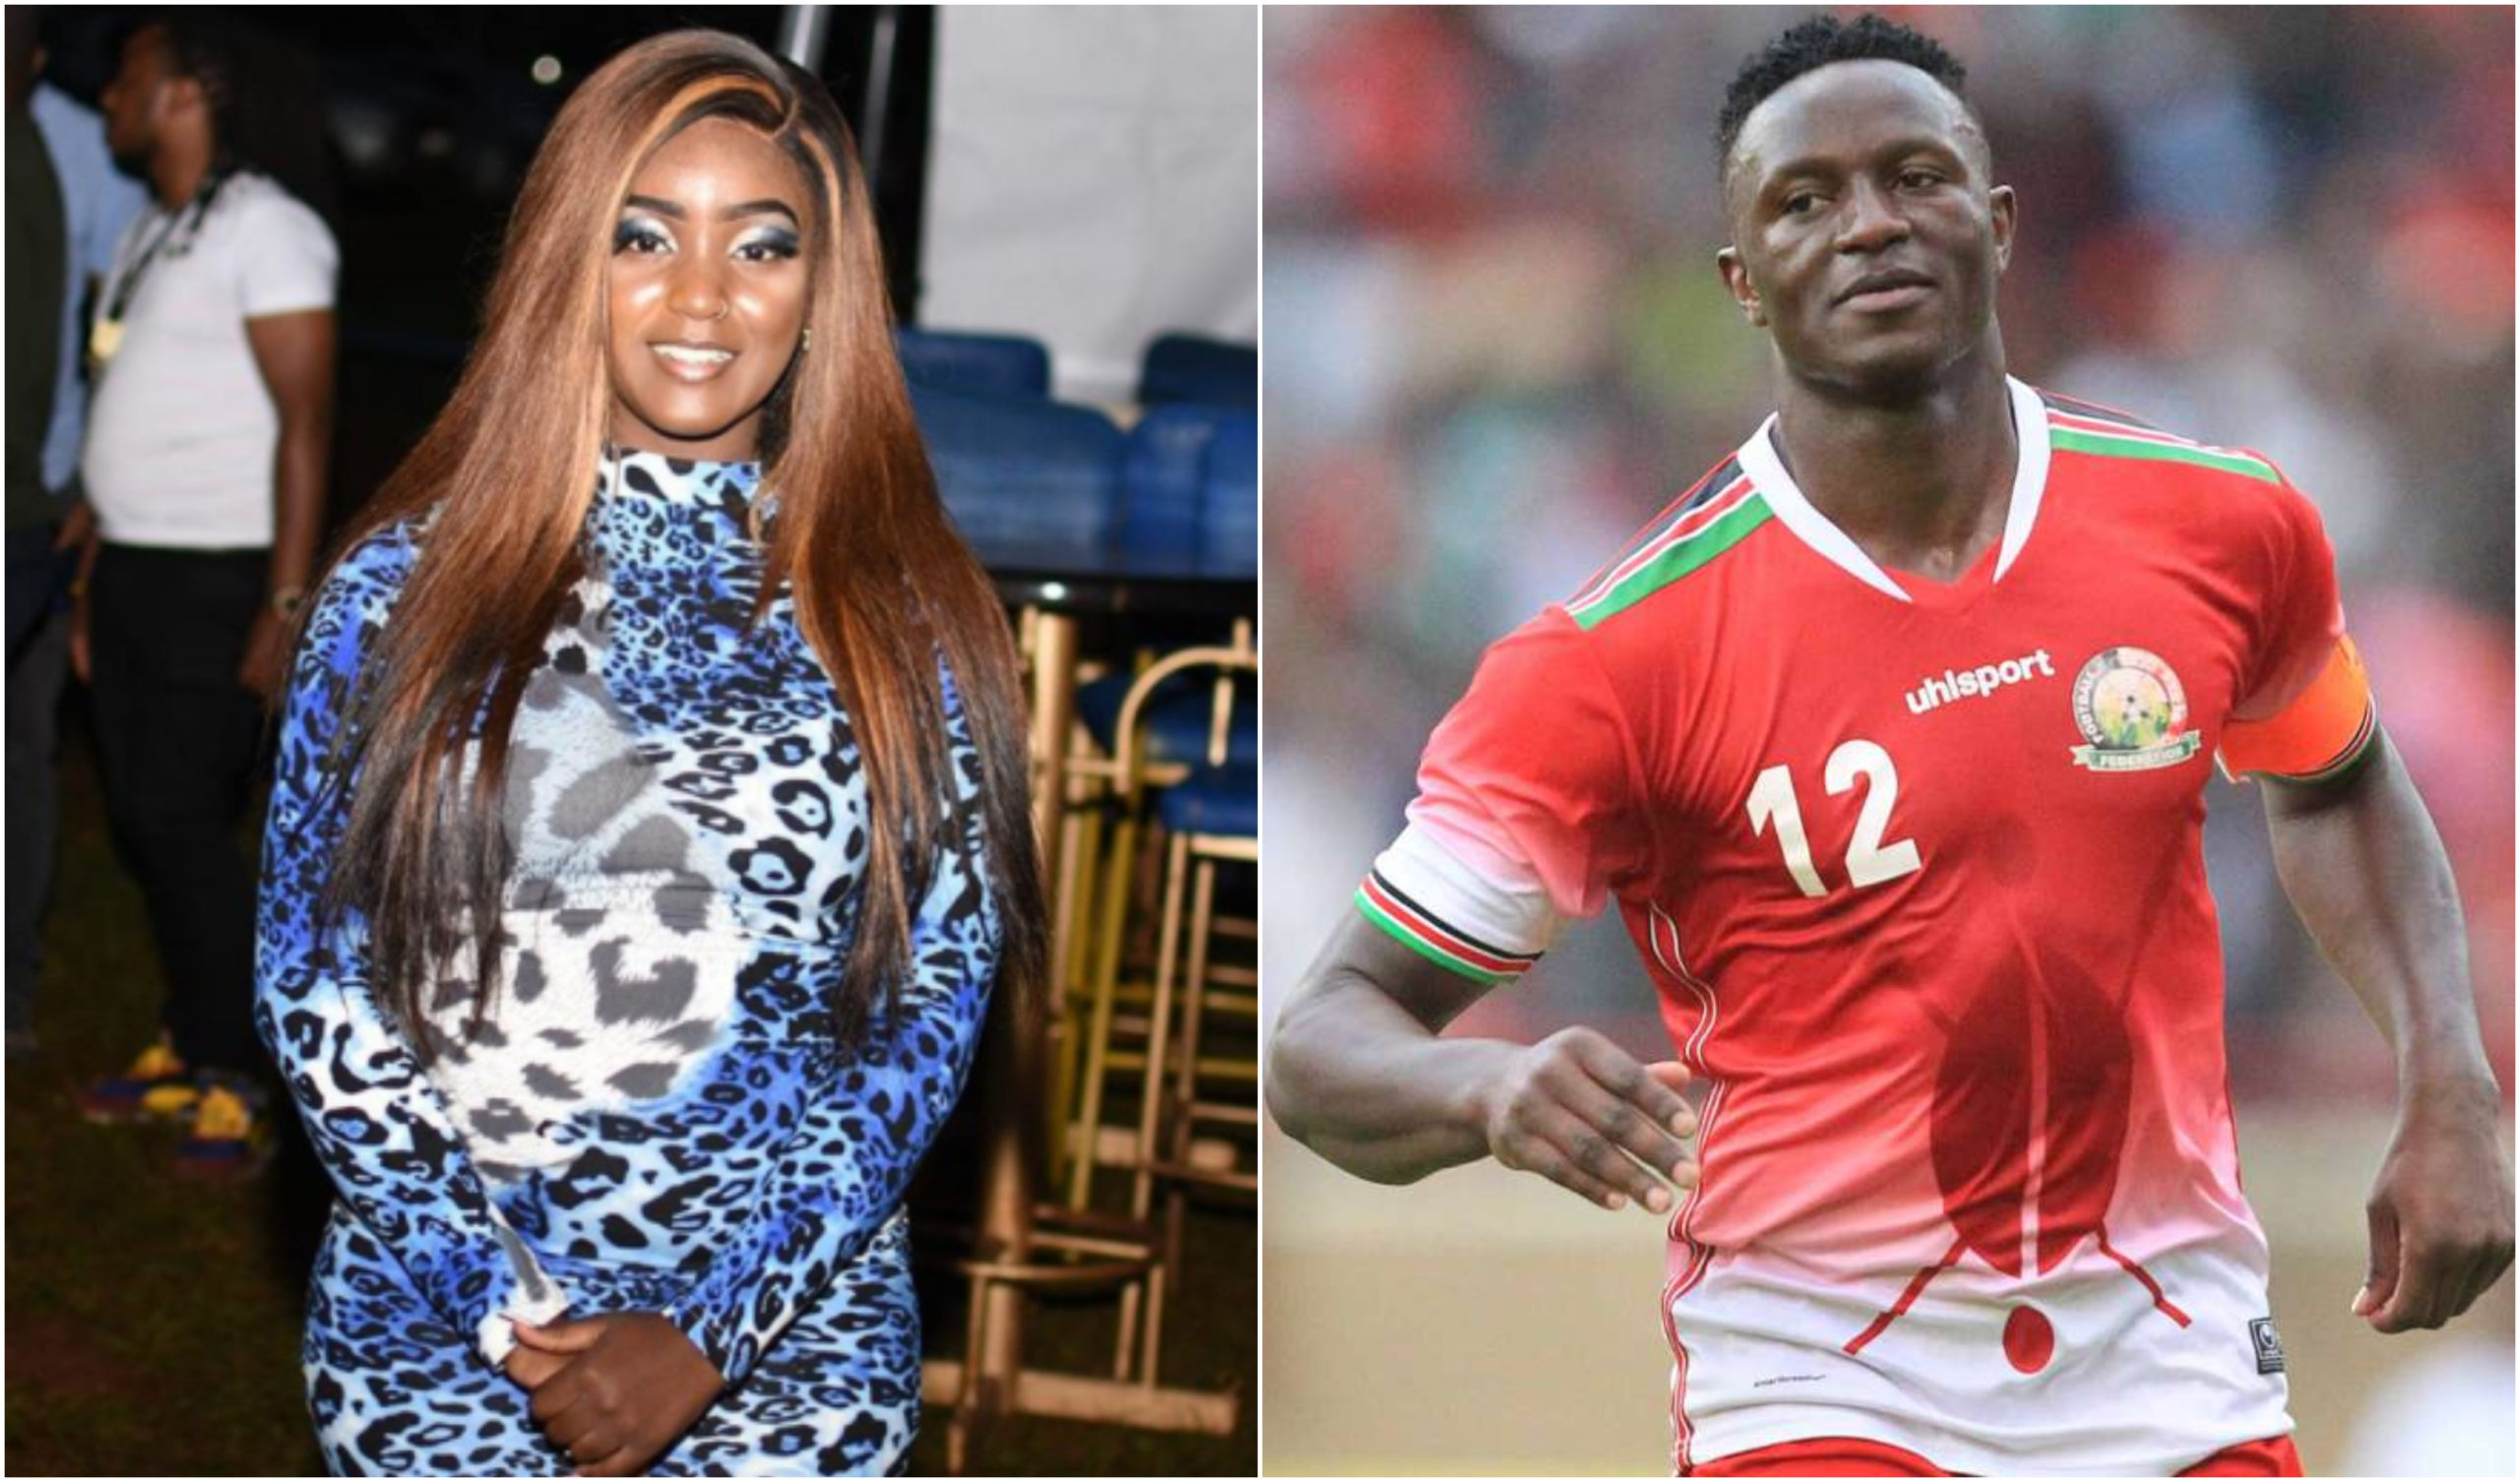 Shakilla finally makes public apology to Victor Wanyama over intimacy scandal (Video)